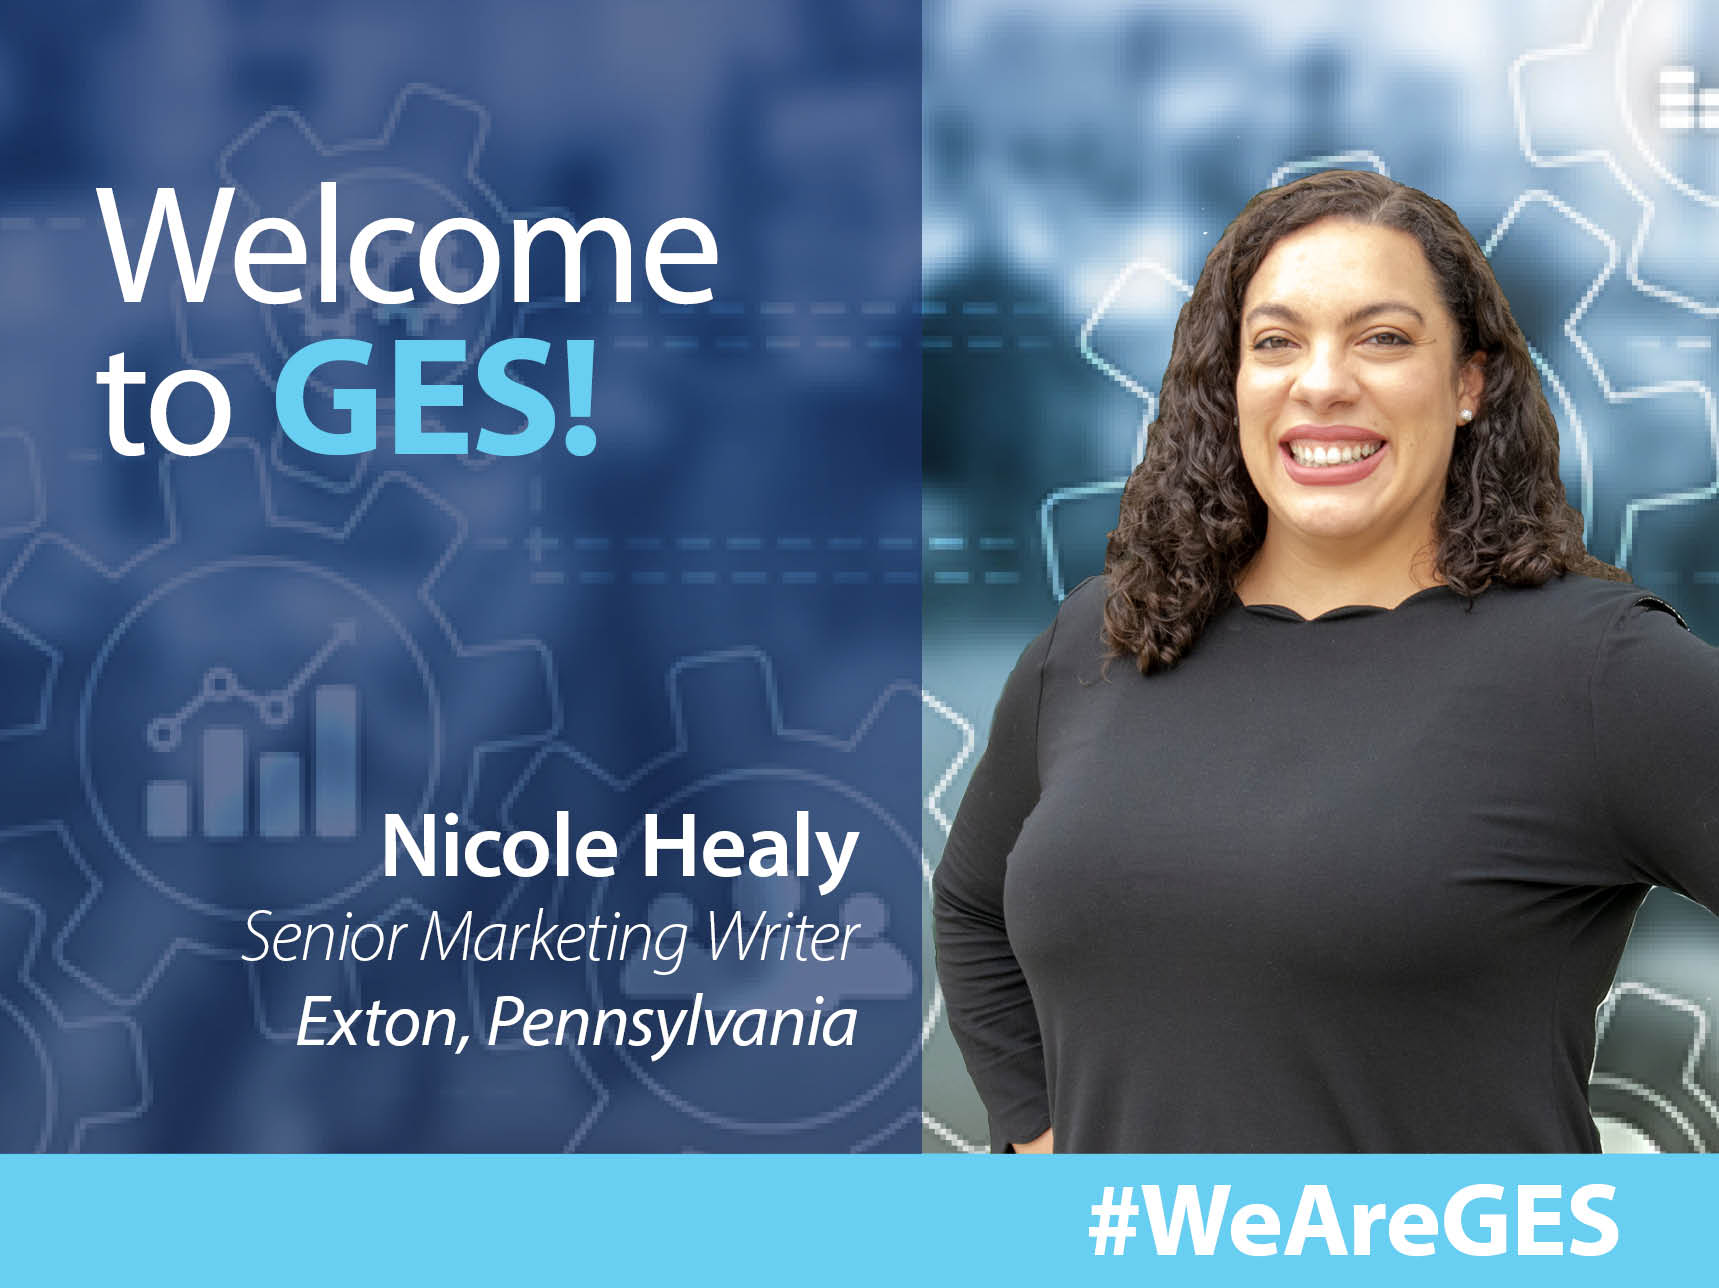 GES Welcomes Nicole Healy, Senior Writer